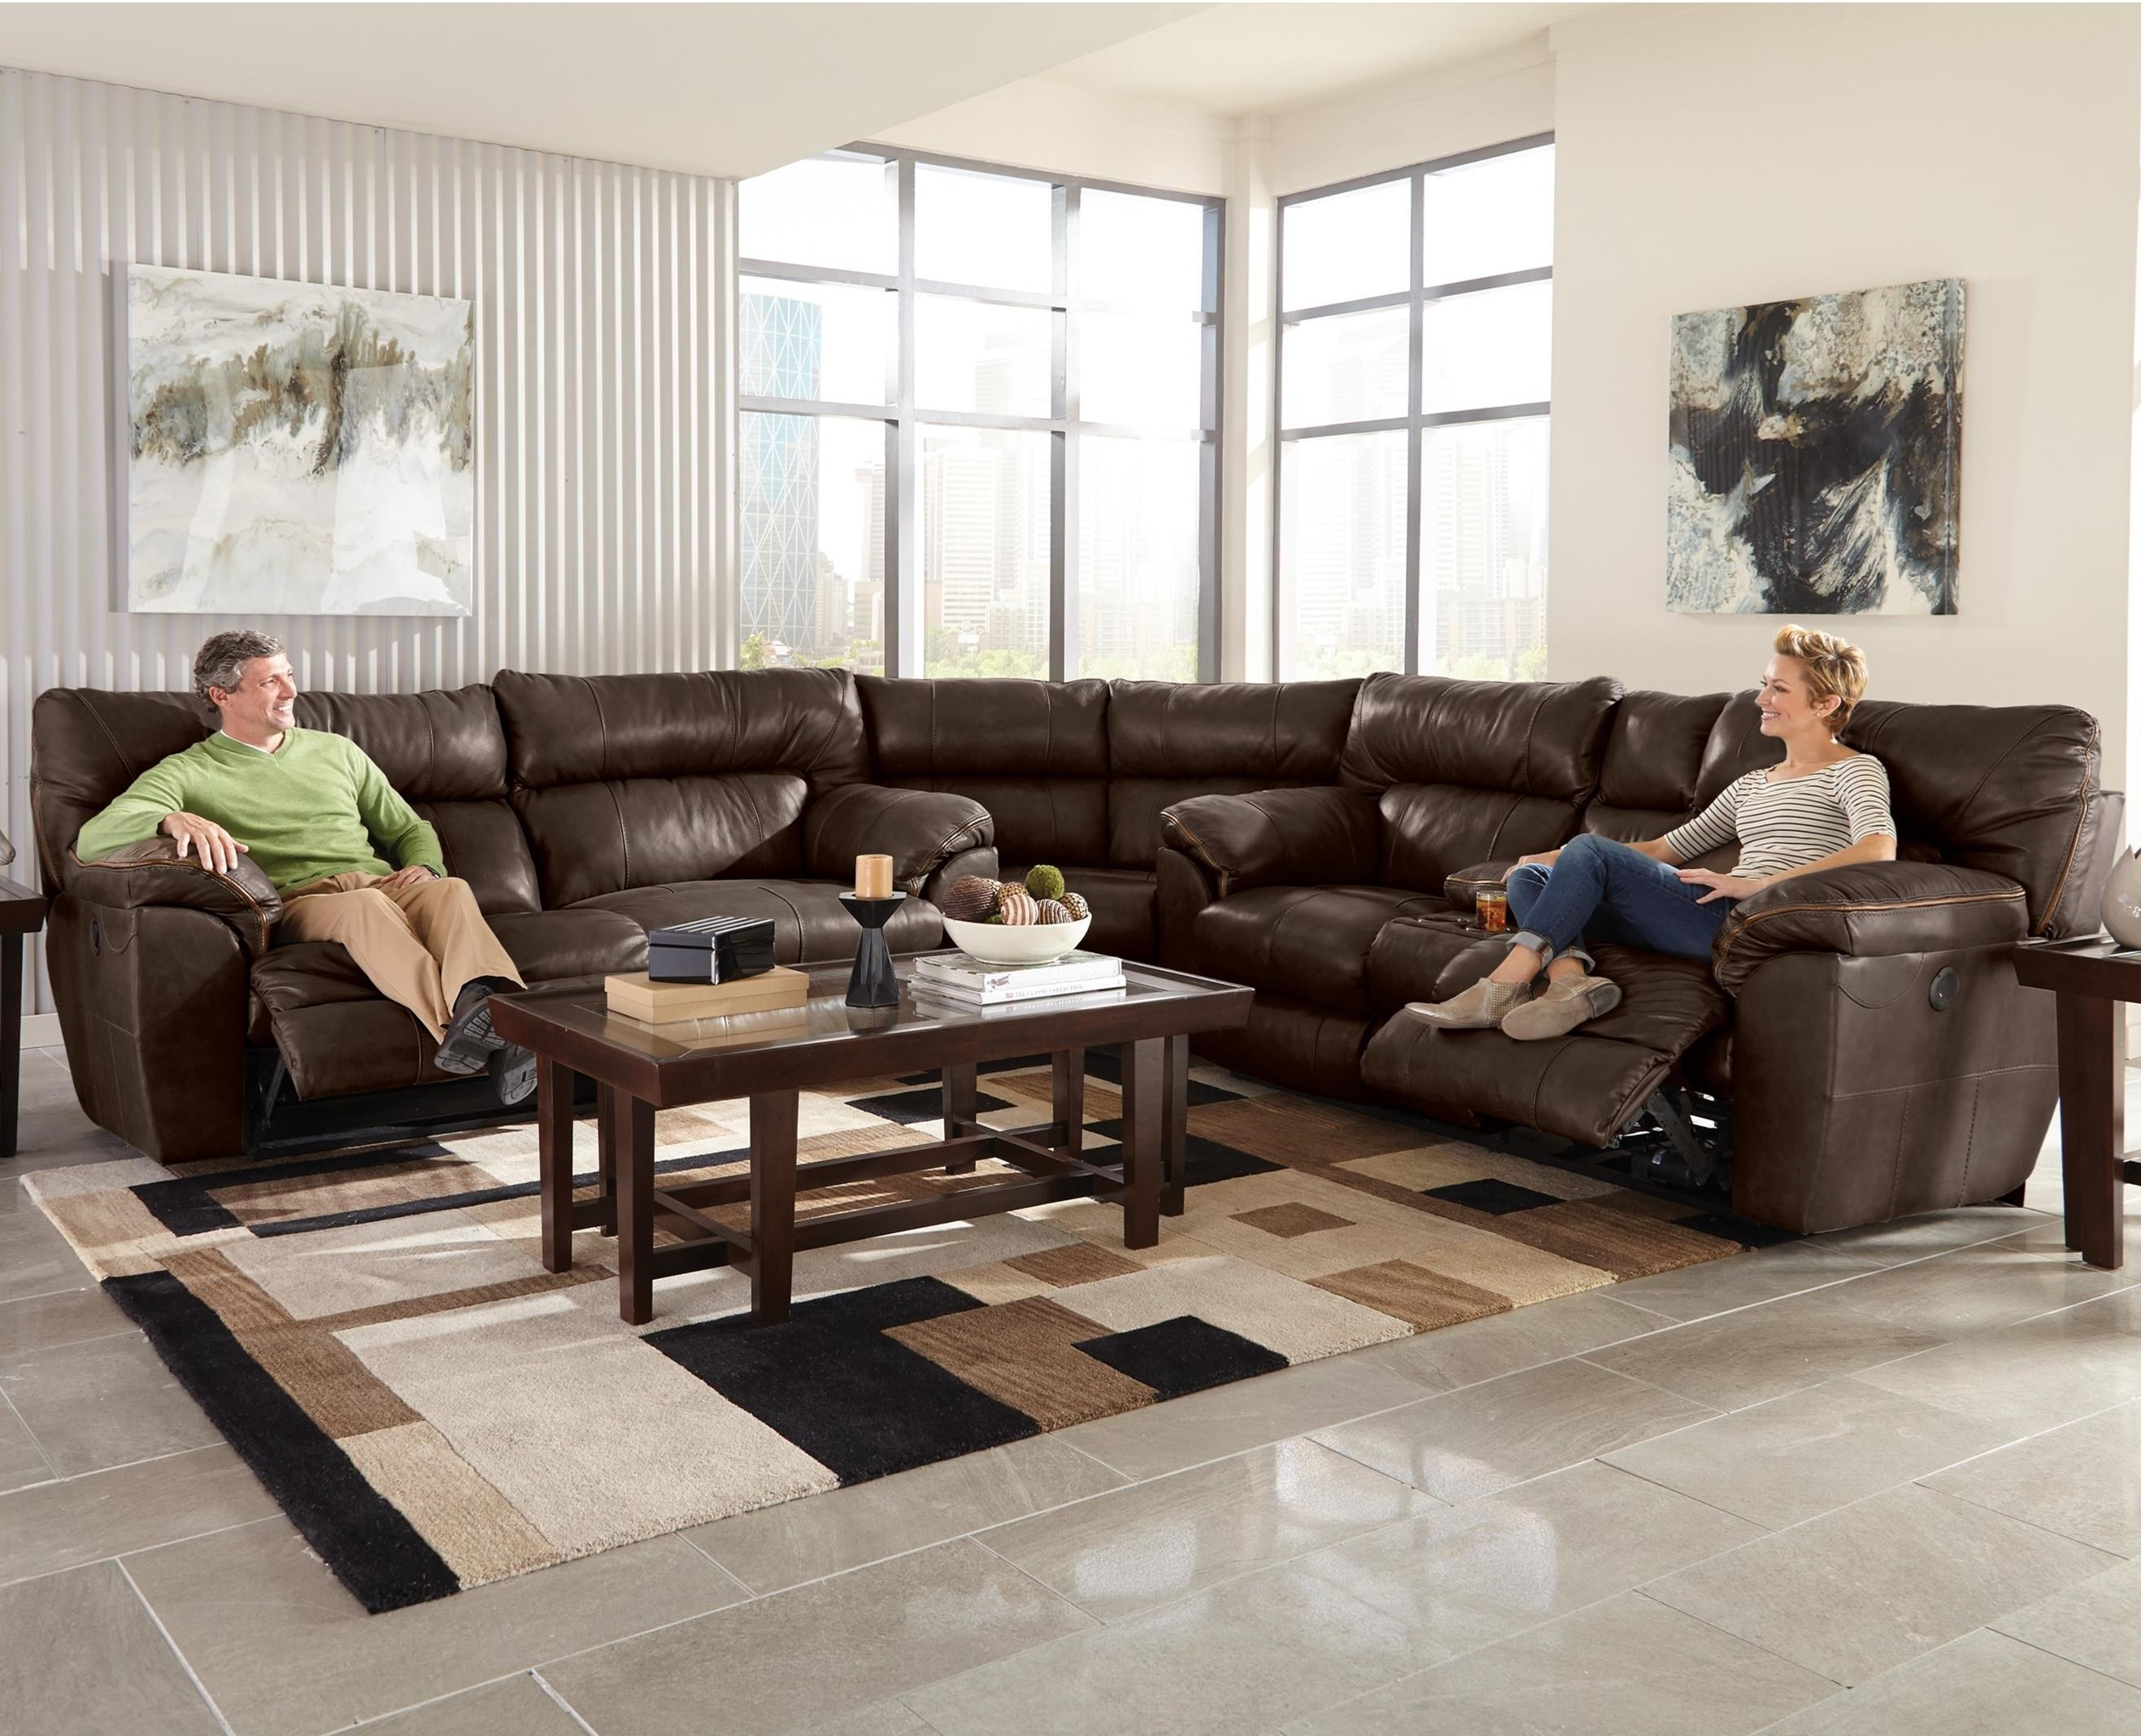 Milan 3 Pc Power Reclining Sectional Sofa by Catnapper at Northeast Factory Direct